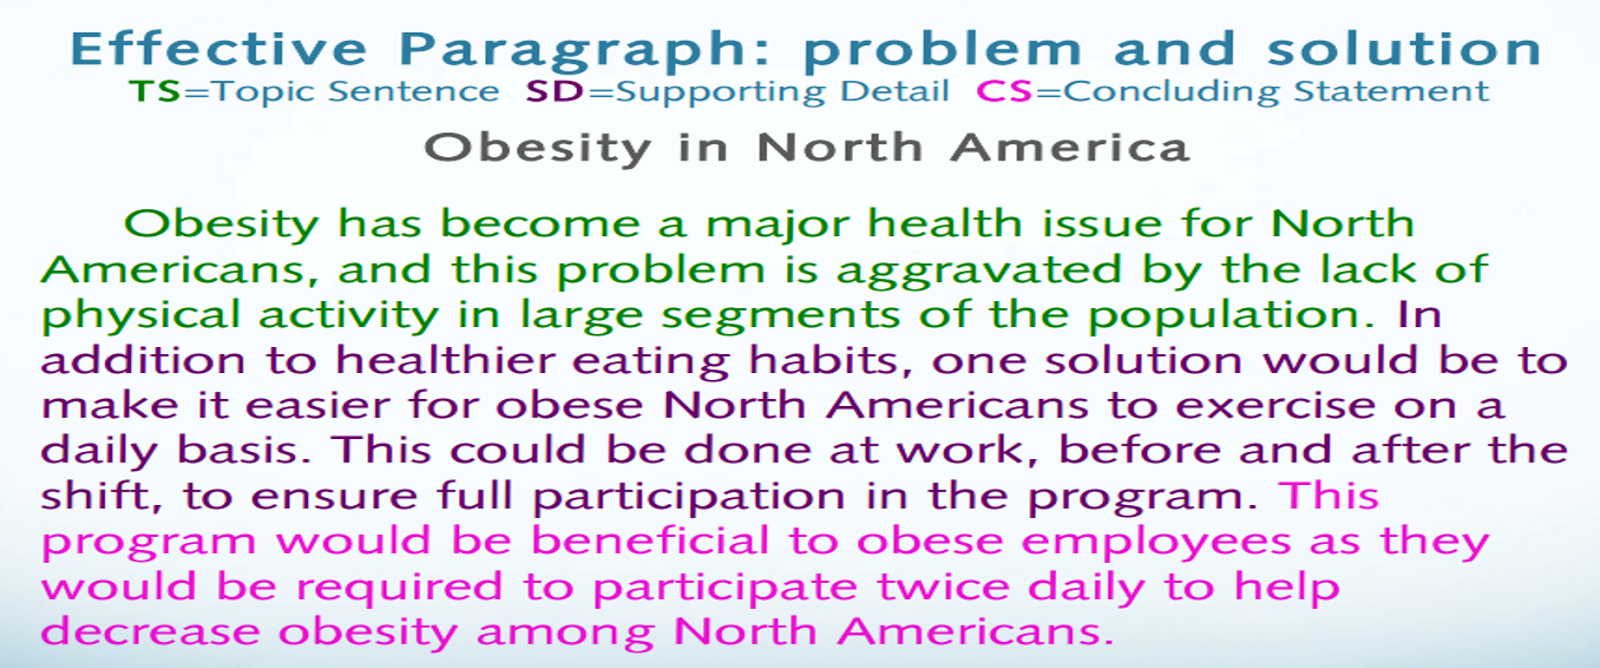 "solution to obesity essay Solutions to childhood obesity essay english 101 december 16, 2013 the solutions to childhood obesity ""over the past three decades, childhood obesity rates in america have tripled, and today, nearly one in three children in america are overweight or obese."